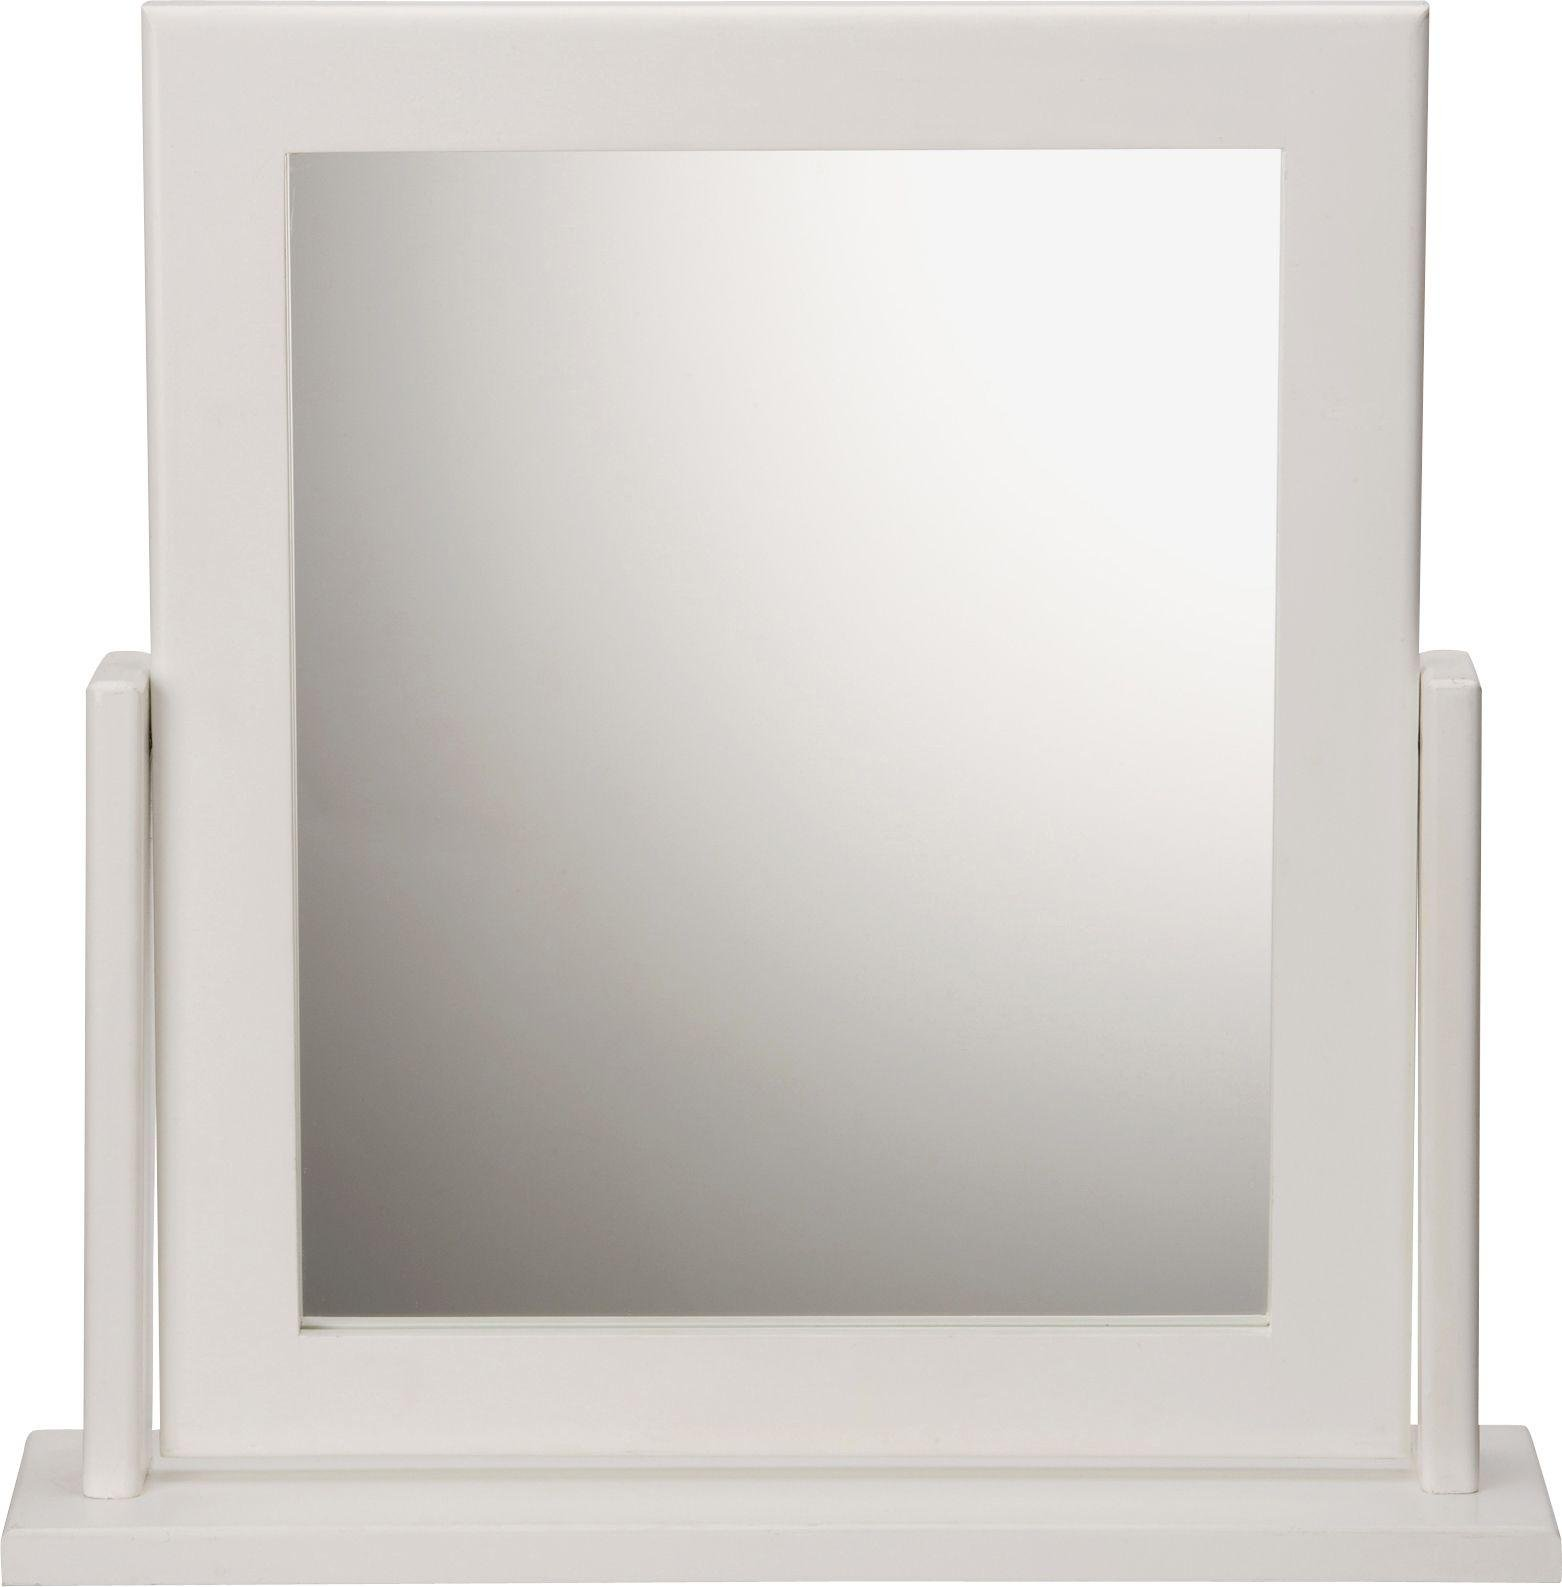 Cheap dressing table mirrors uk dress style for Cheap dressing table with mirror